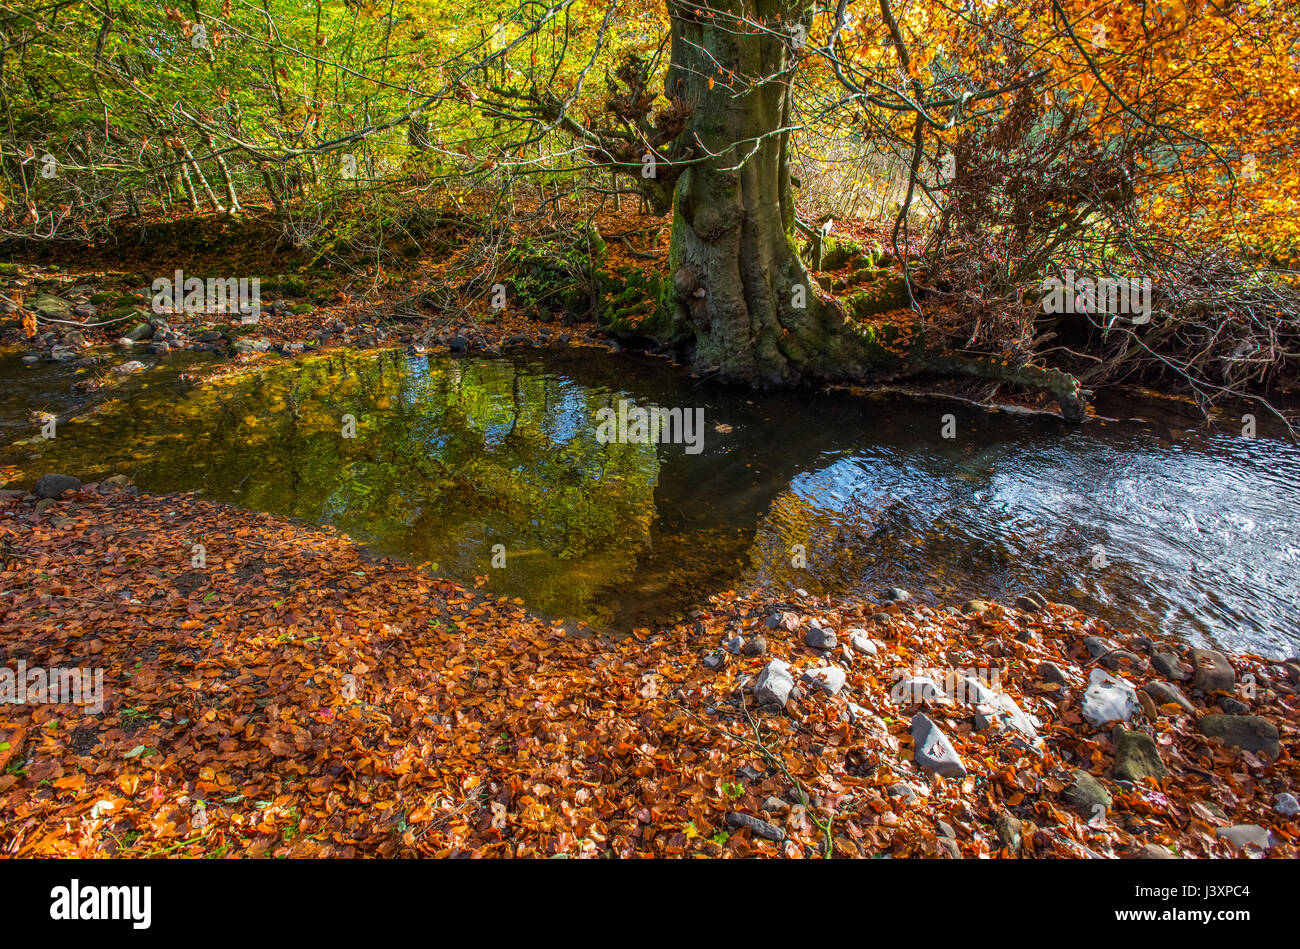 Autumn, Chipping Brook, Chipping, Preston, Lancashire. - Stock Image